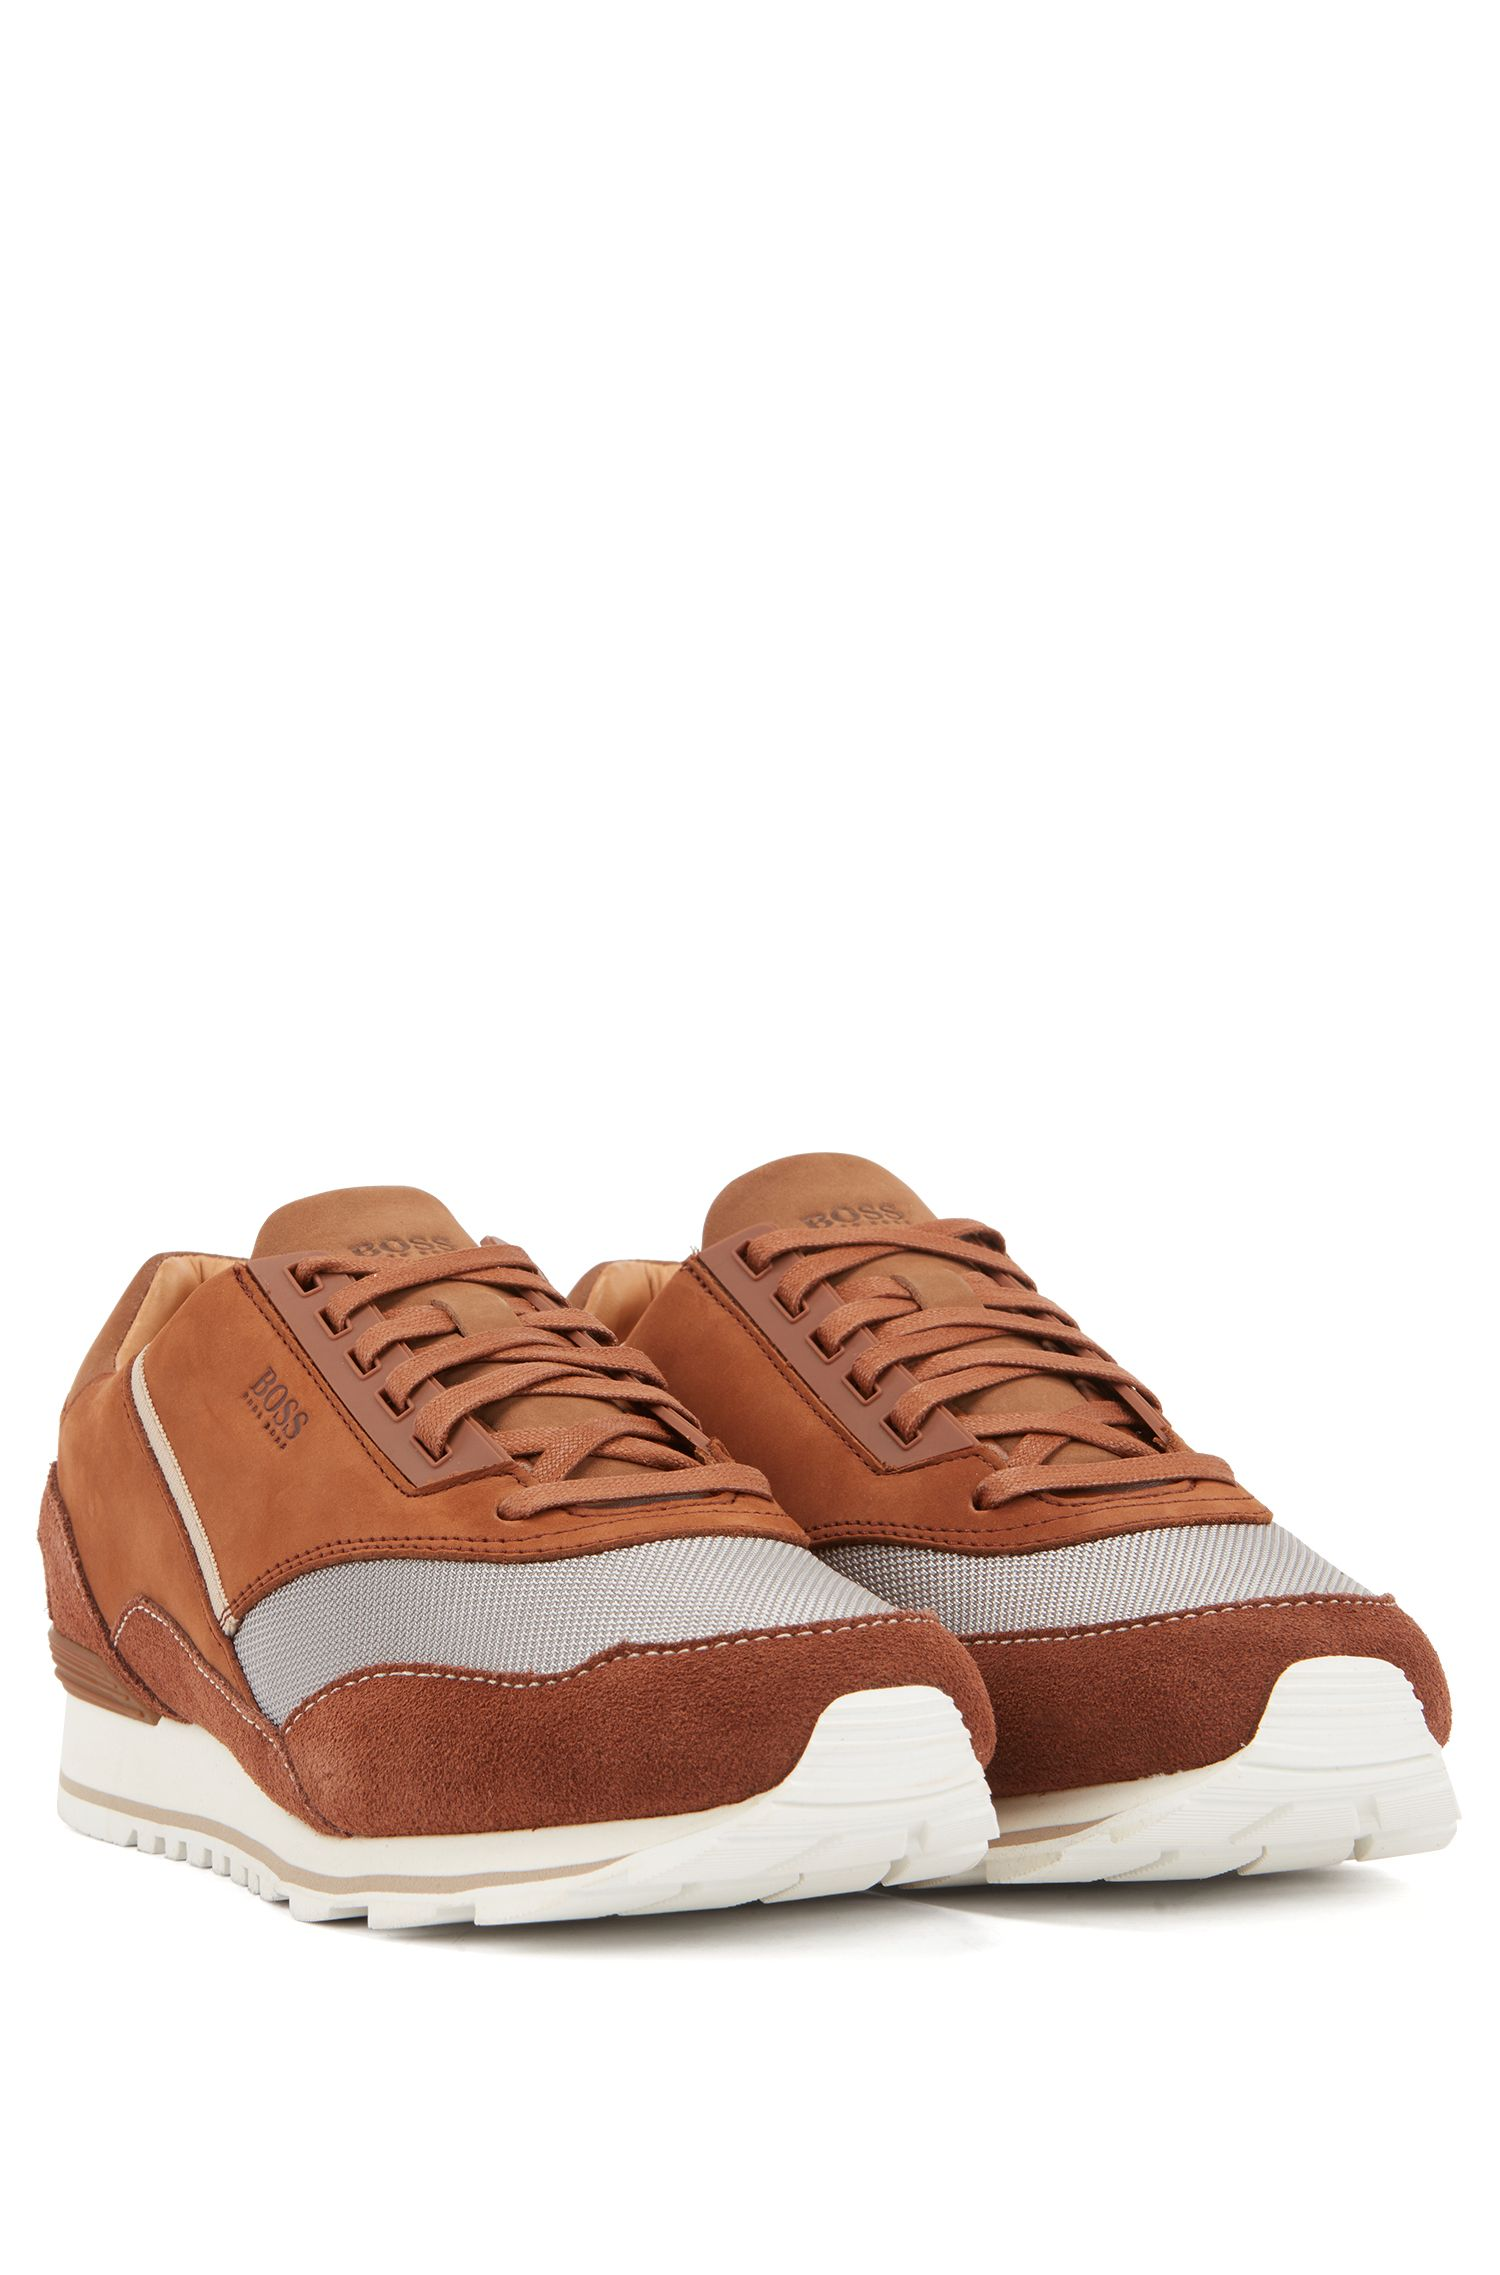 Low-top trainers in suede, leather and technical fabric, Brown